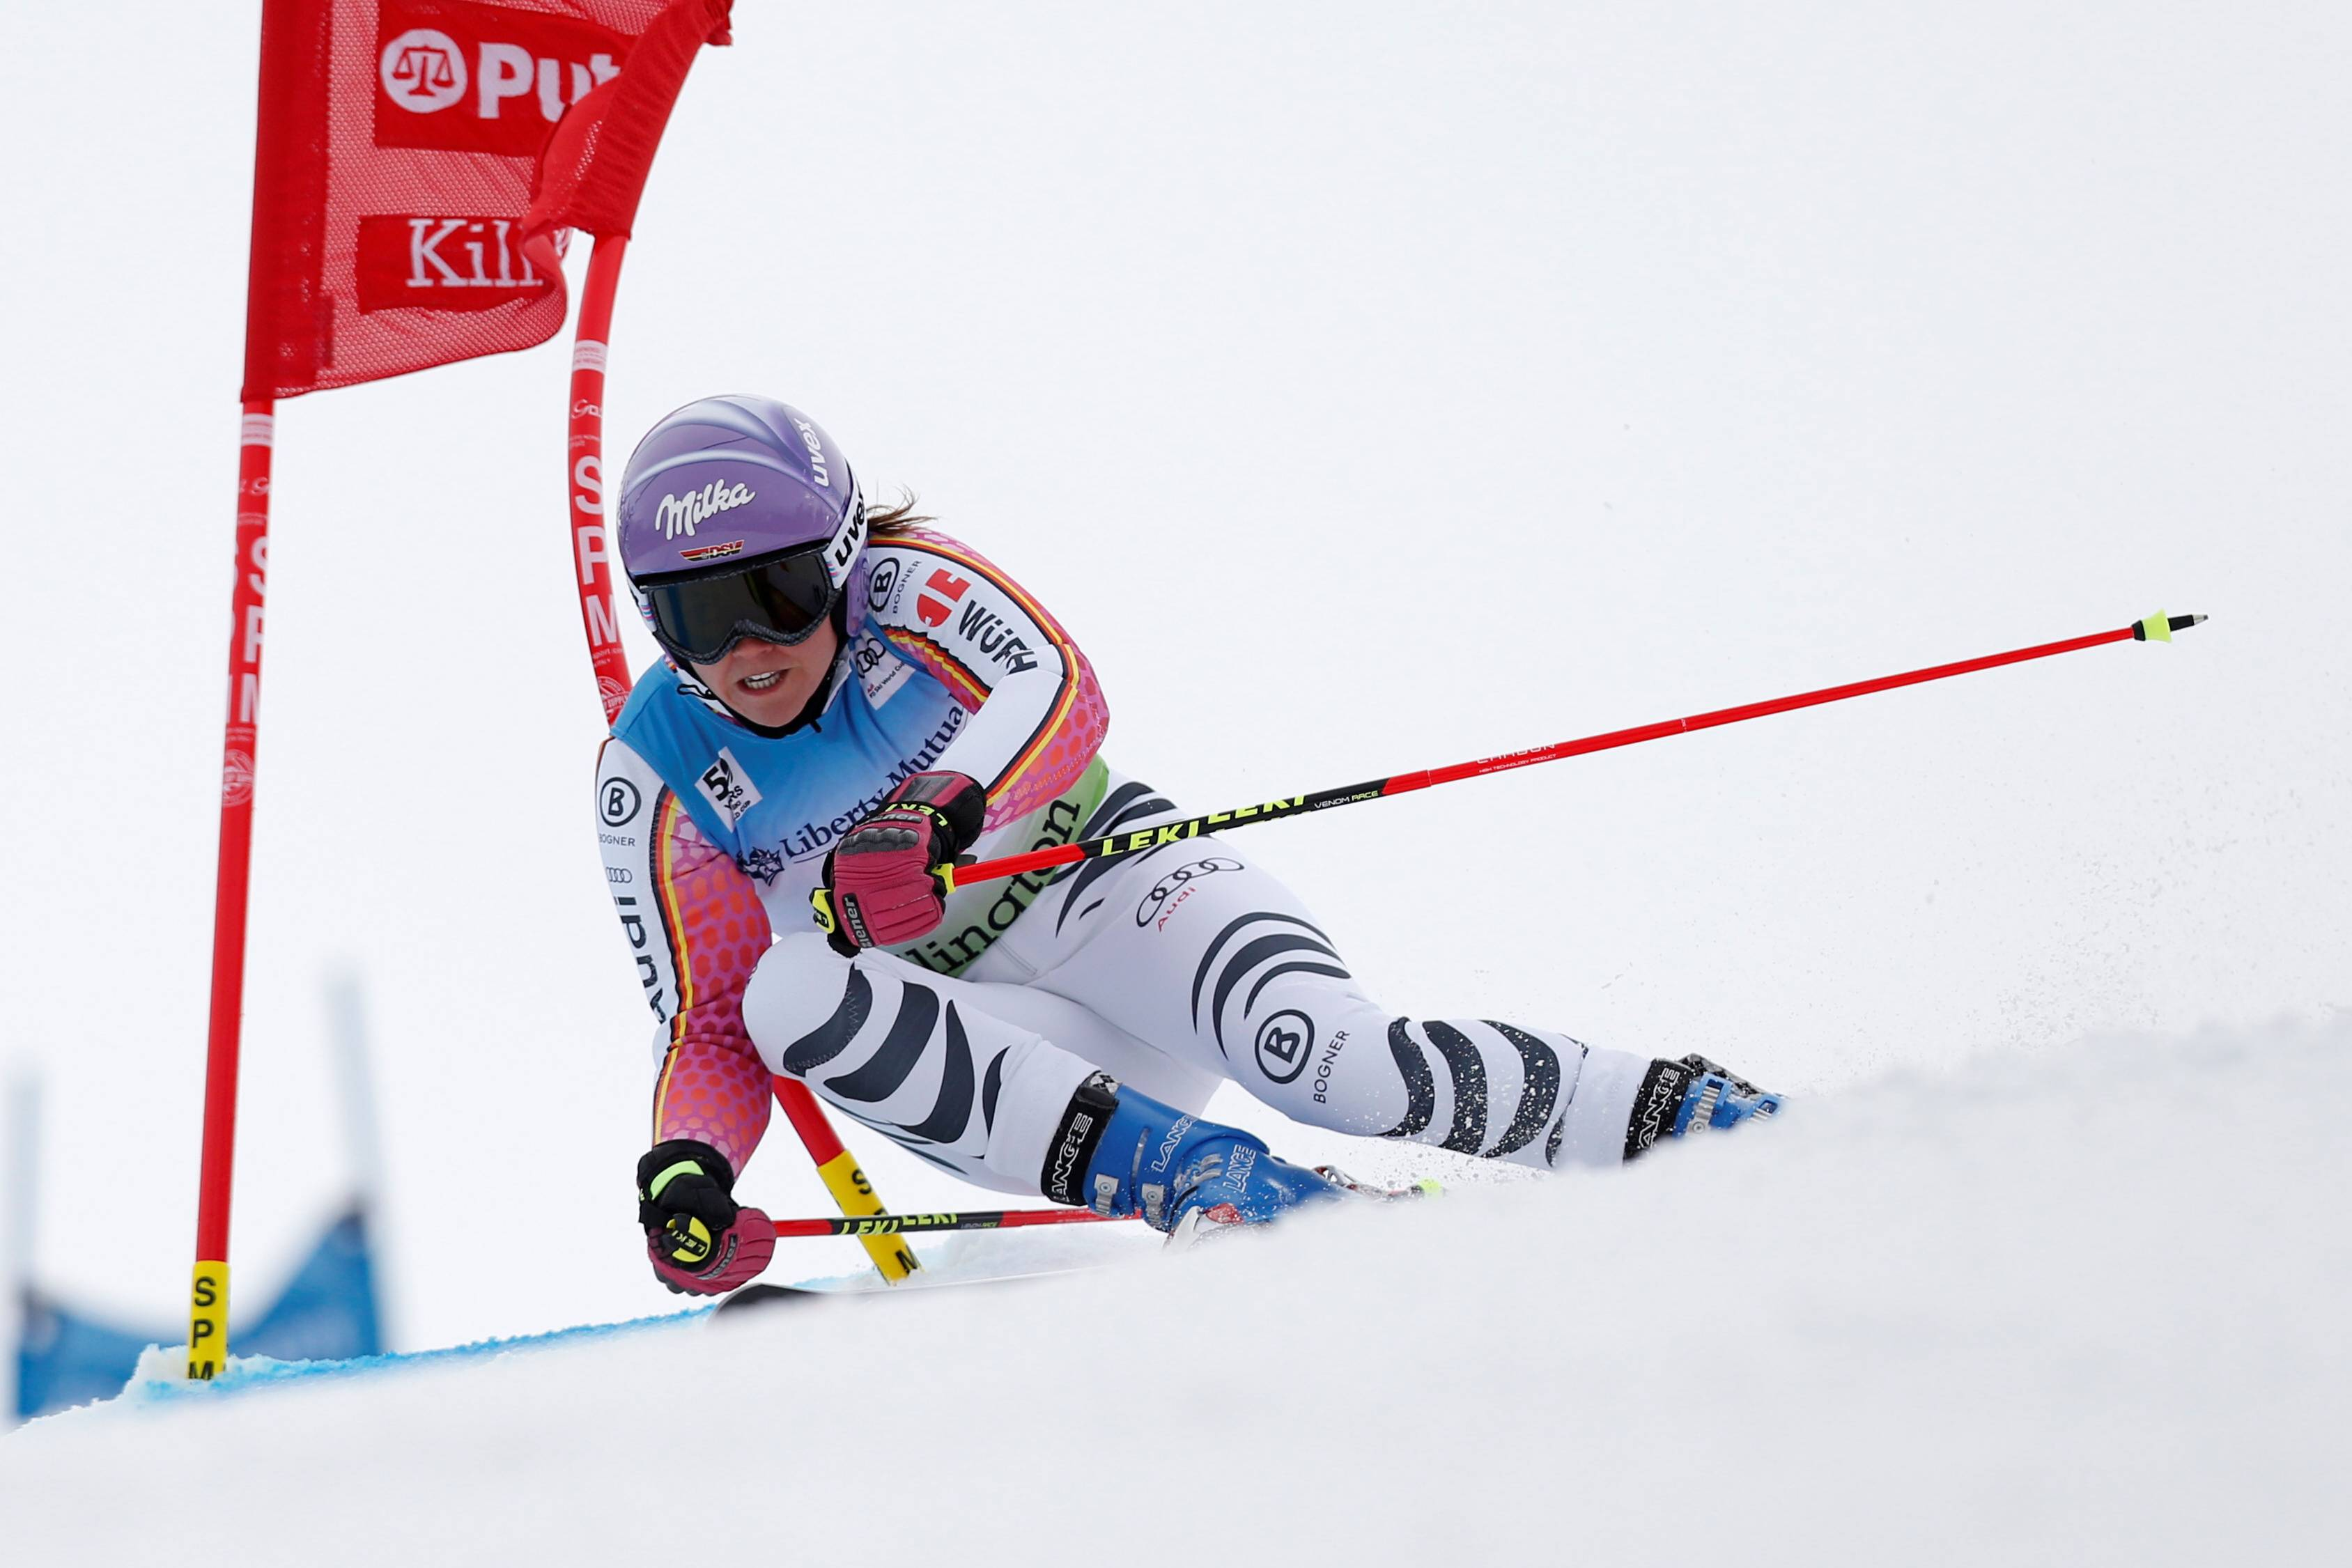 ALPINE SKIING - FIS WC Killington KILLINGTON,VERMONT,USA,26.NOV.16 - ALPINE SKIING - FIS World Cup Killington, Giant Slalom, Ladies. Image Shows Viktoria Rebensburg (GER). Keywords: Stoeckli PUBLICATIONxINxGERxHUNxONLY GEPAxpictures/xGregxM.xCooper  Alpine Skiing FIS WC   Vermont USA 26 Nov 16 Alpine Skiing FIS World Cup  Giant Slalom Ladies Image Shows Viktoria Vine Castle Ger Keywords Stoeckli PUBLICATIONxINxGERxHUNxONLY GEPAxpictures